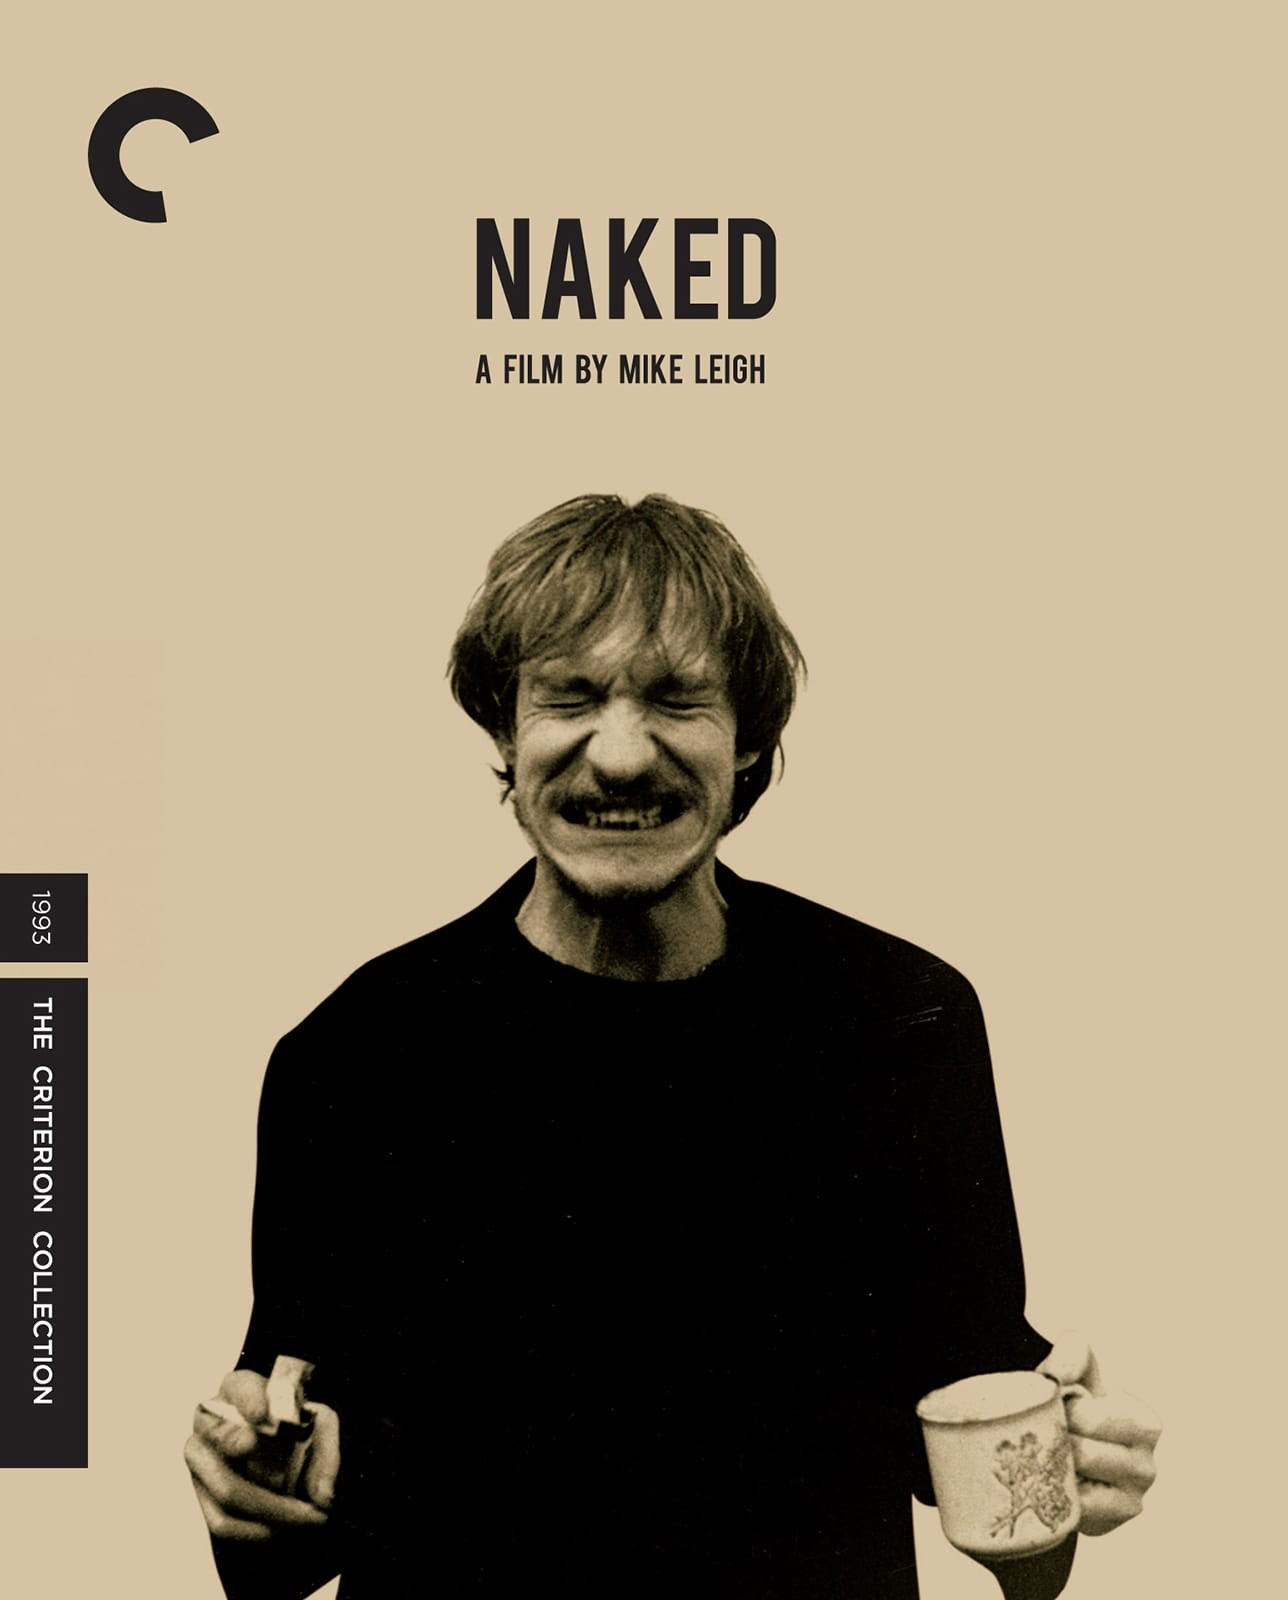 Image result for Naked mike leigh